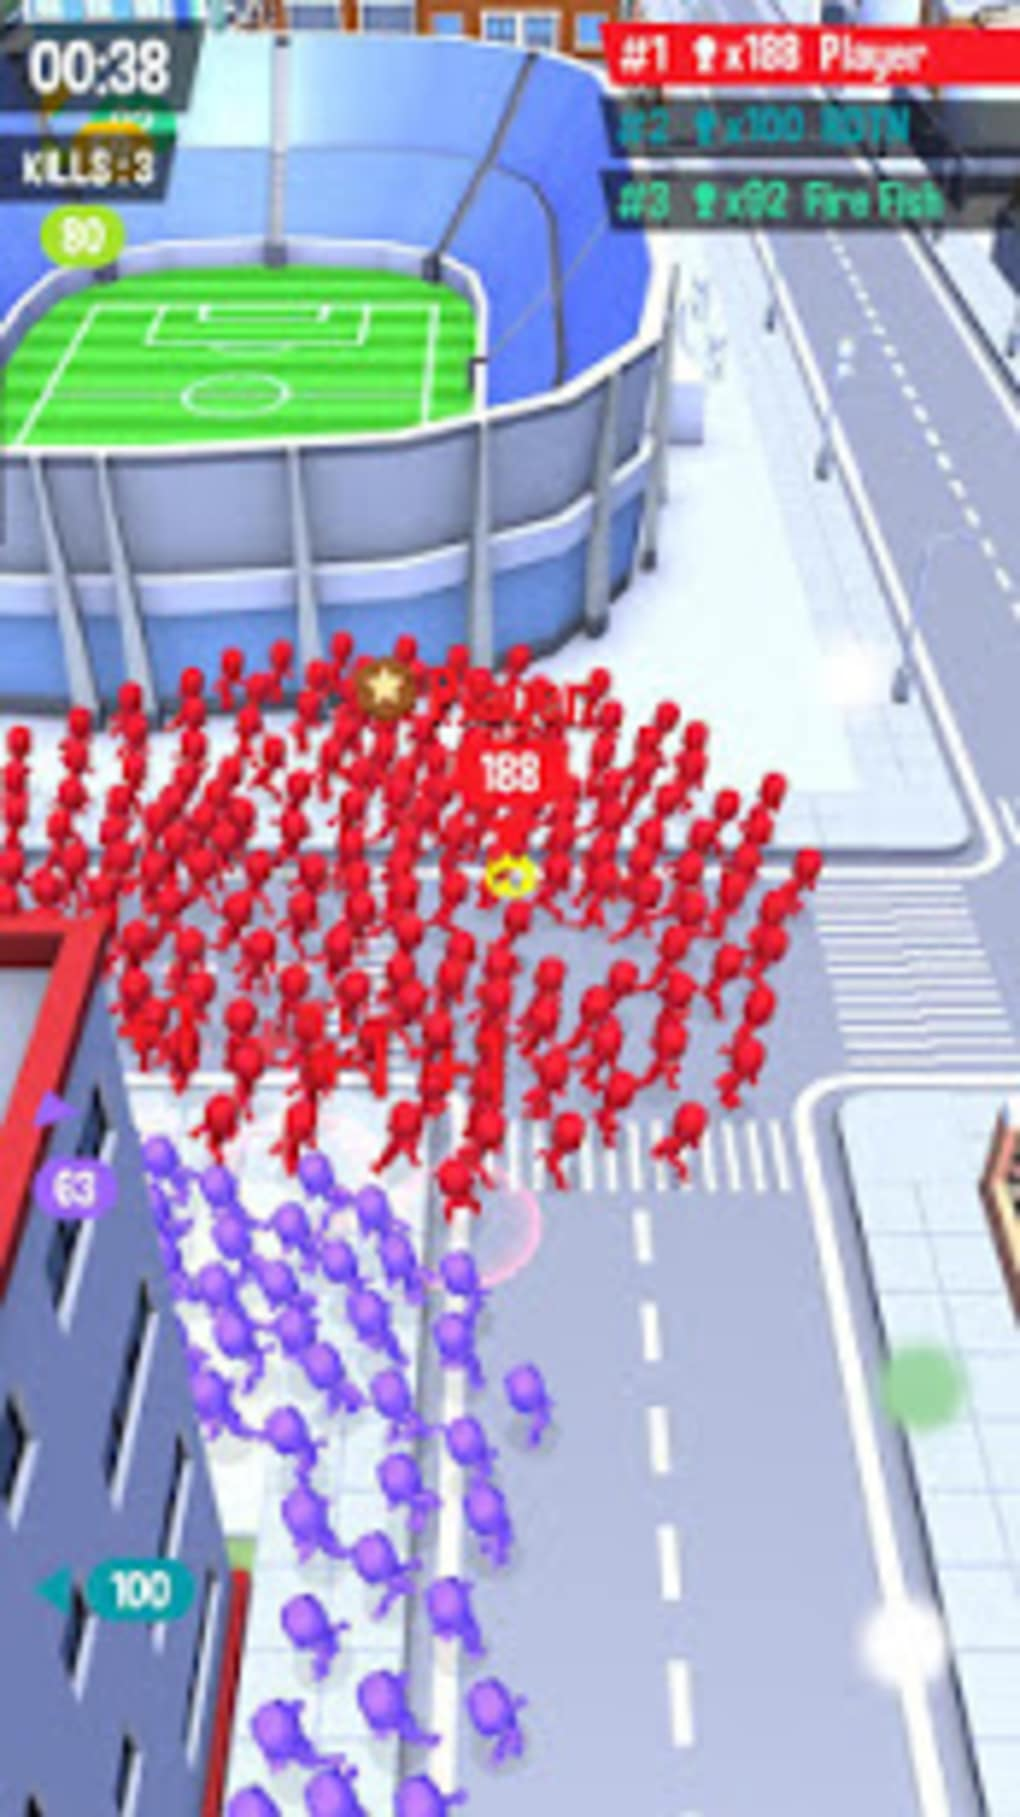 crowd city for Android - Download